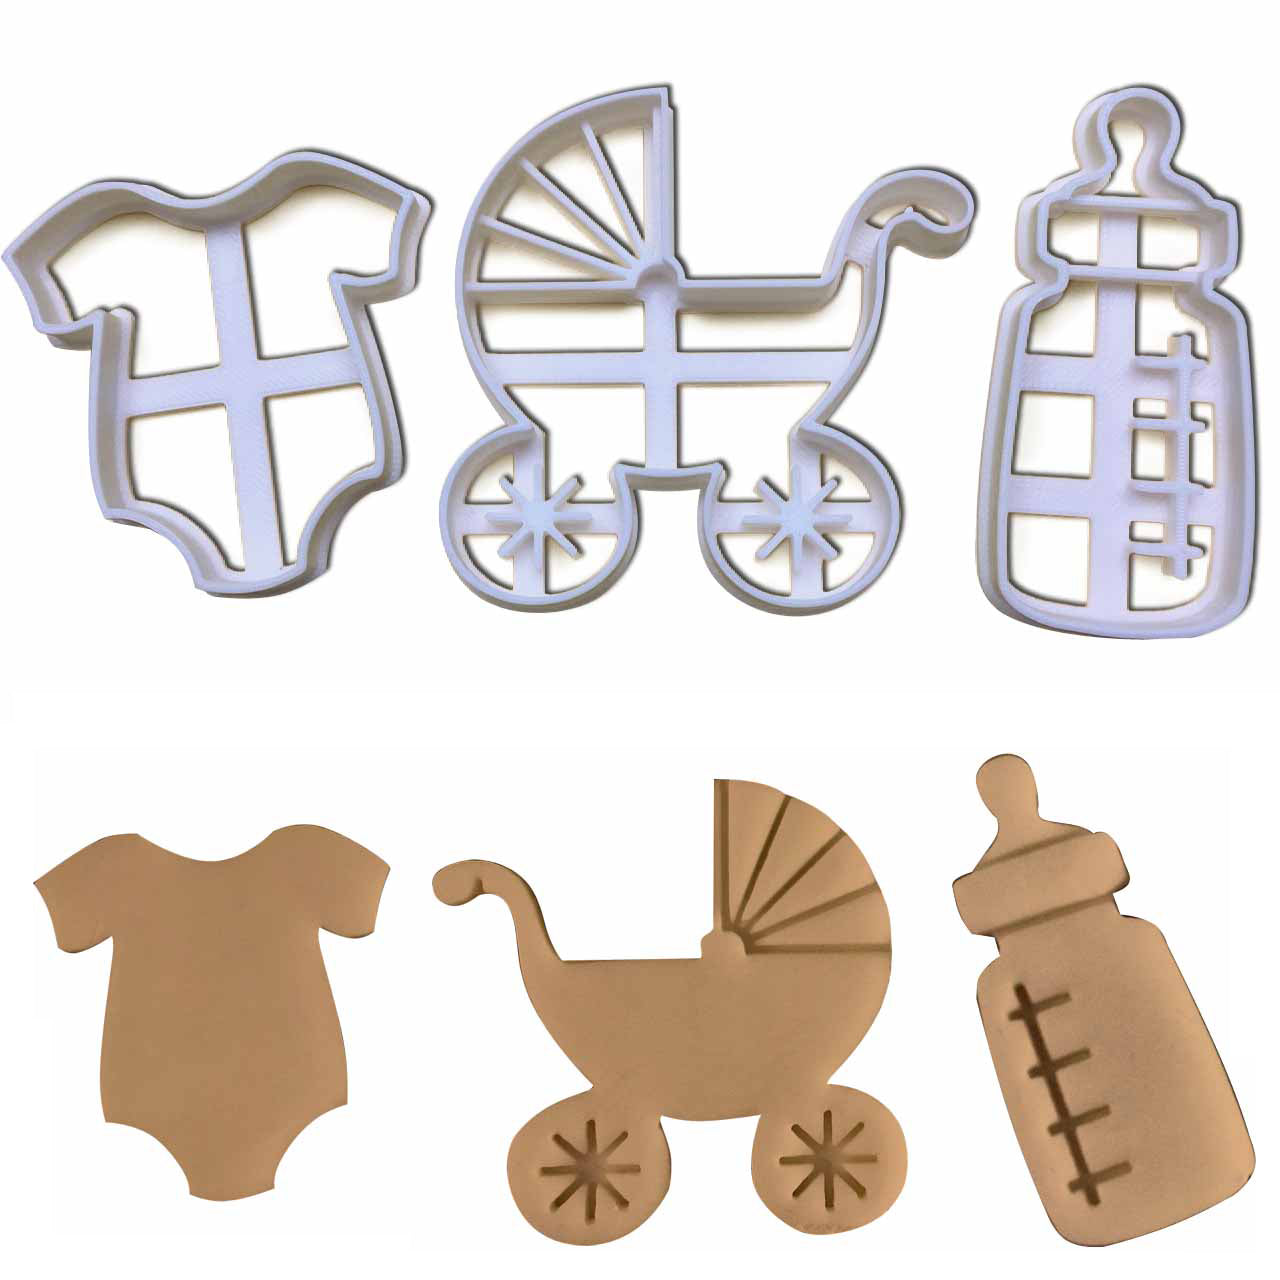 set of 3 baby shower cookie cutters: Baby pram, baby bottle, and baby clothes cookie cutters